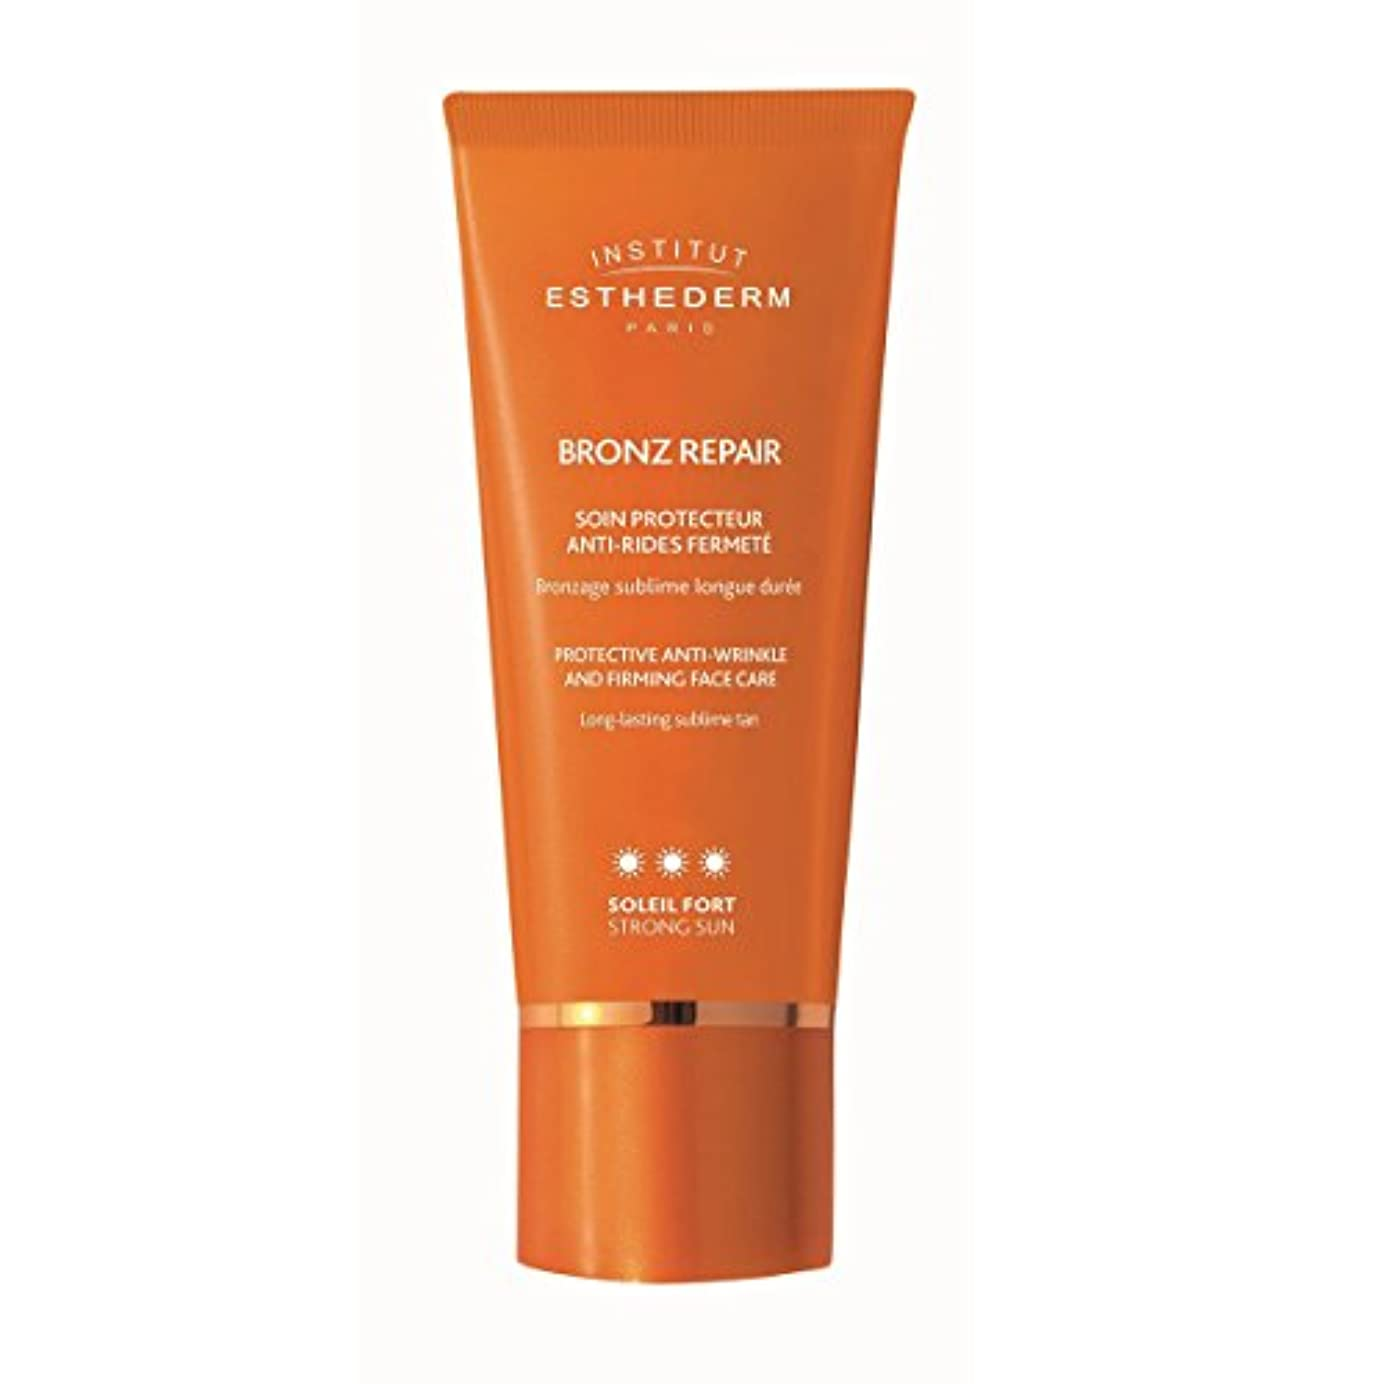 パーティションしょっぱい拘束するInstitut Esthederm Bronz Repair Protective Anti-wrinkle And Firming Face Care Strong Sun 50ml [並行輸入品]